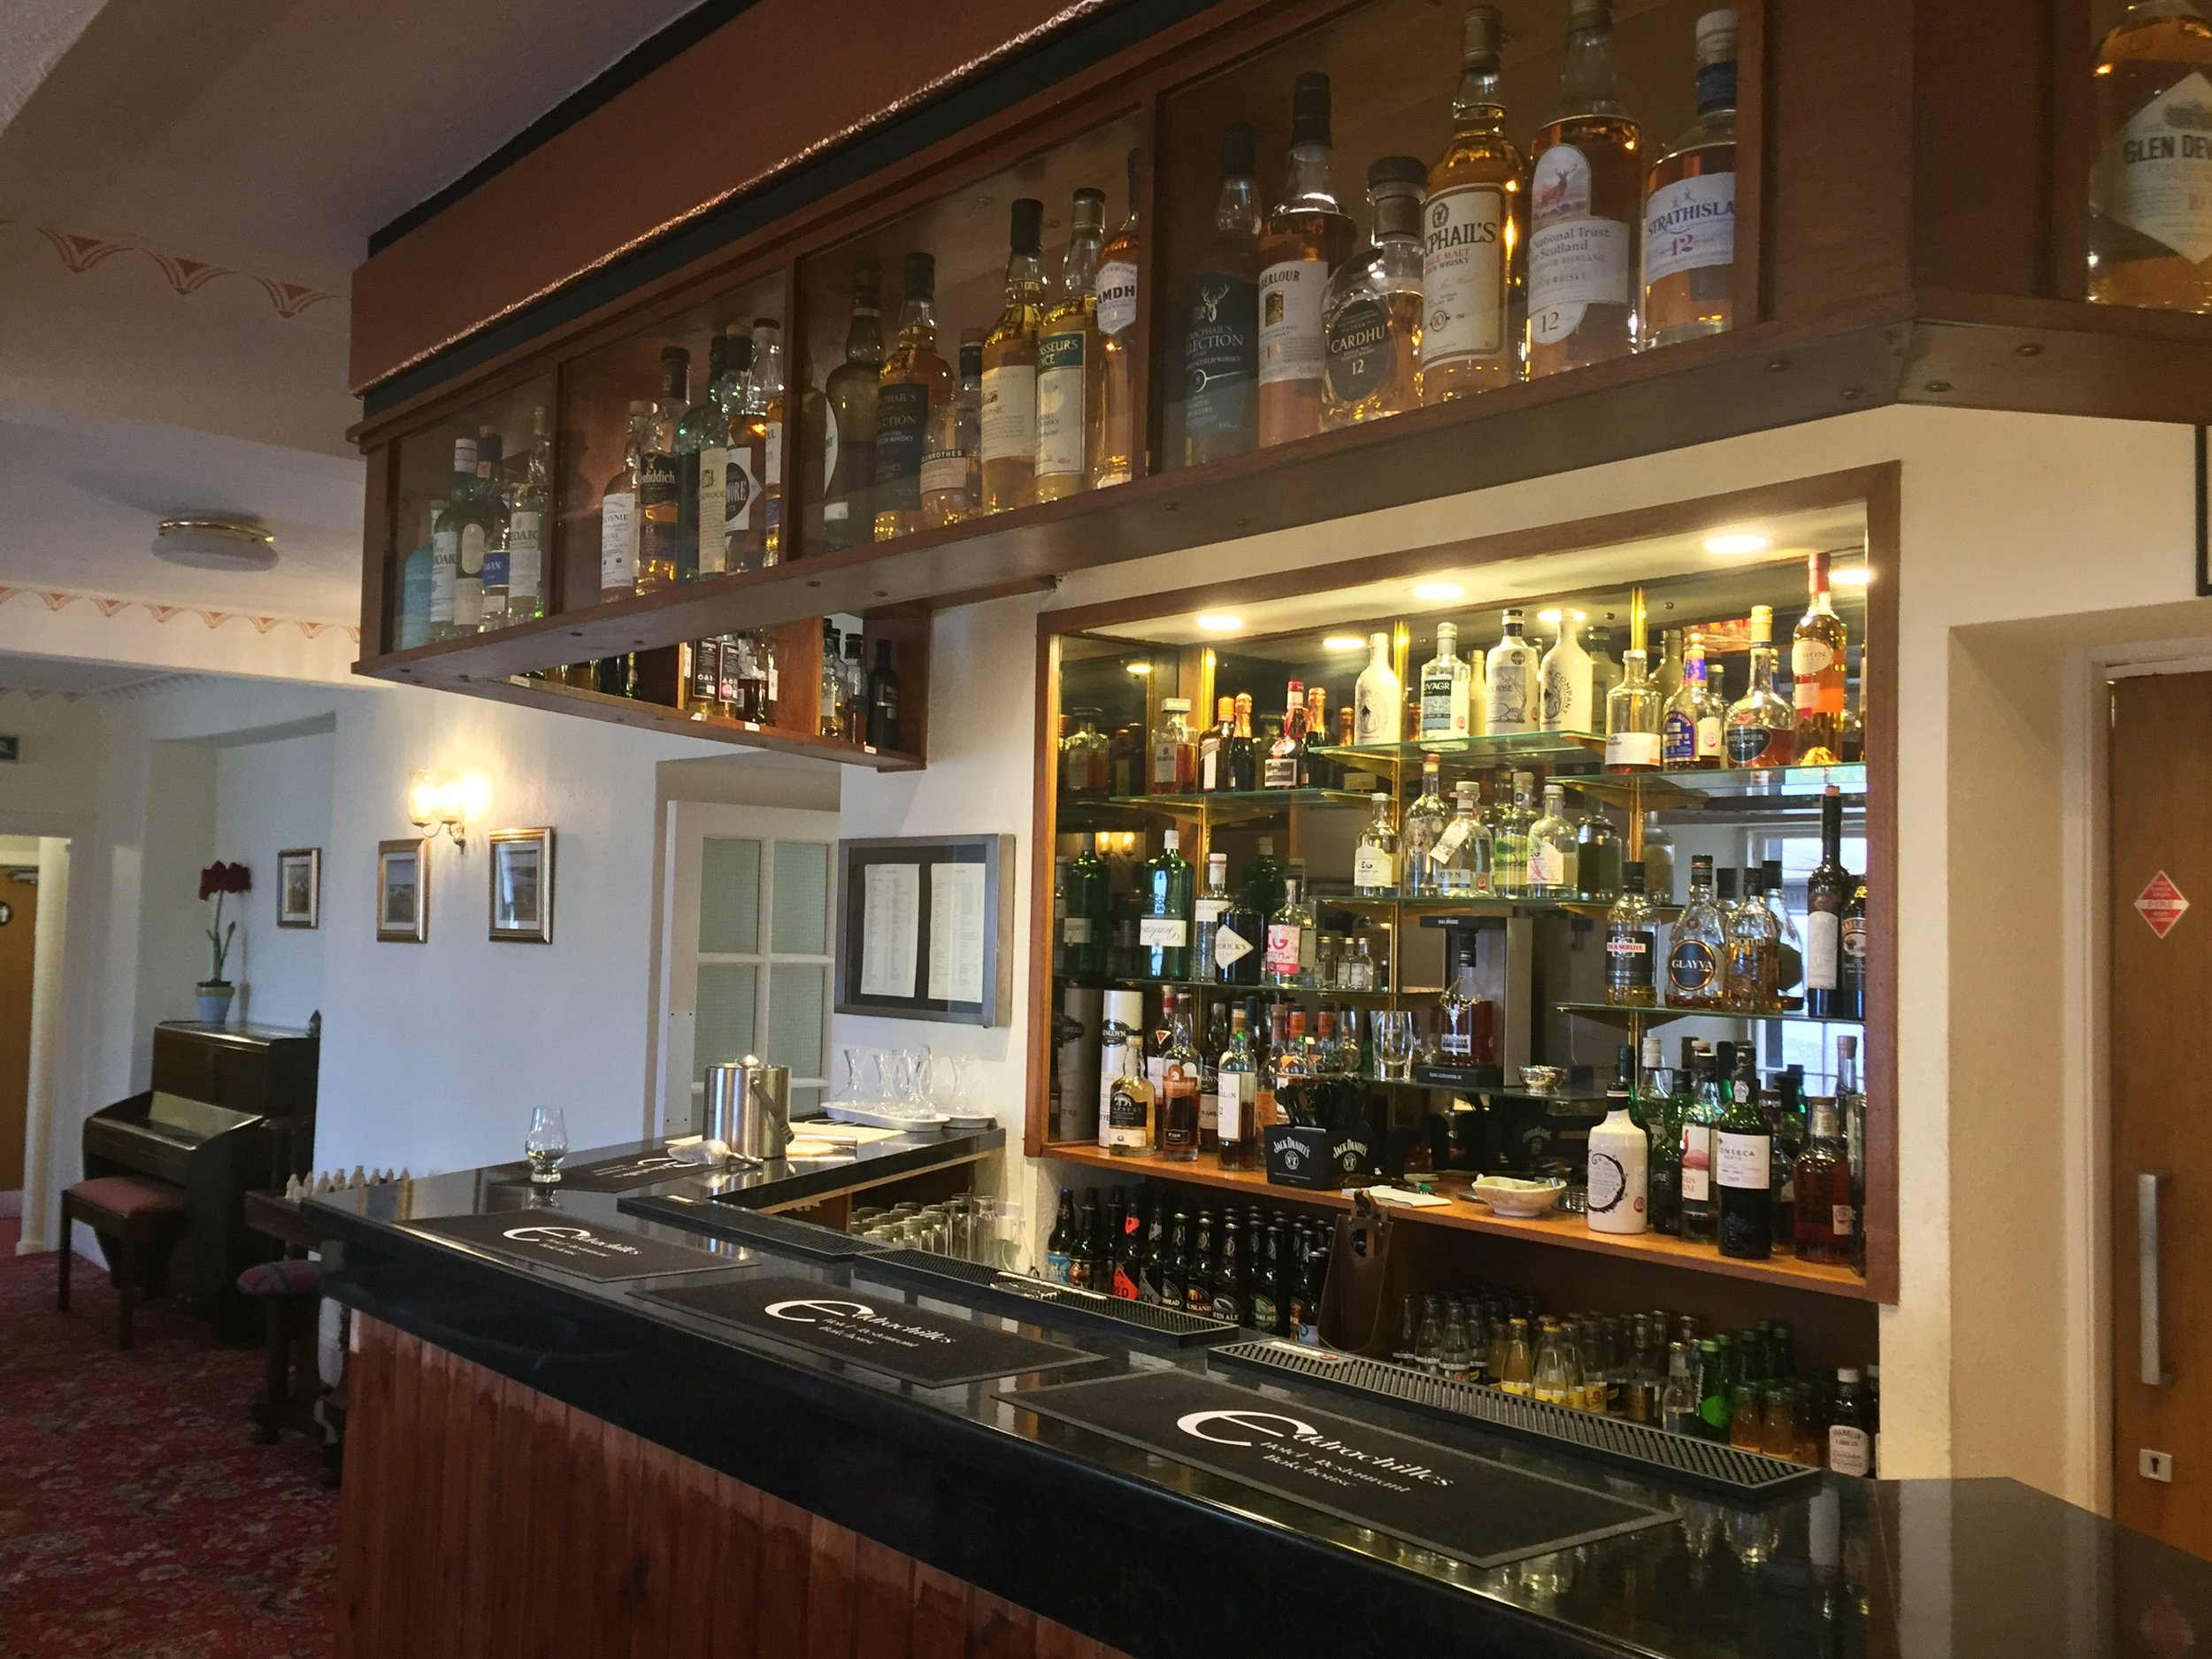 Lounge Bar, Over 60 whiskies, and a selection of Scottish craft gins and beers